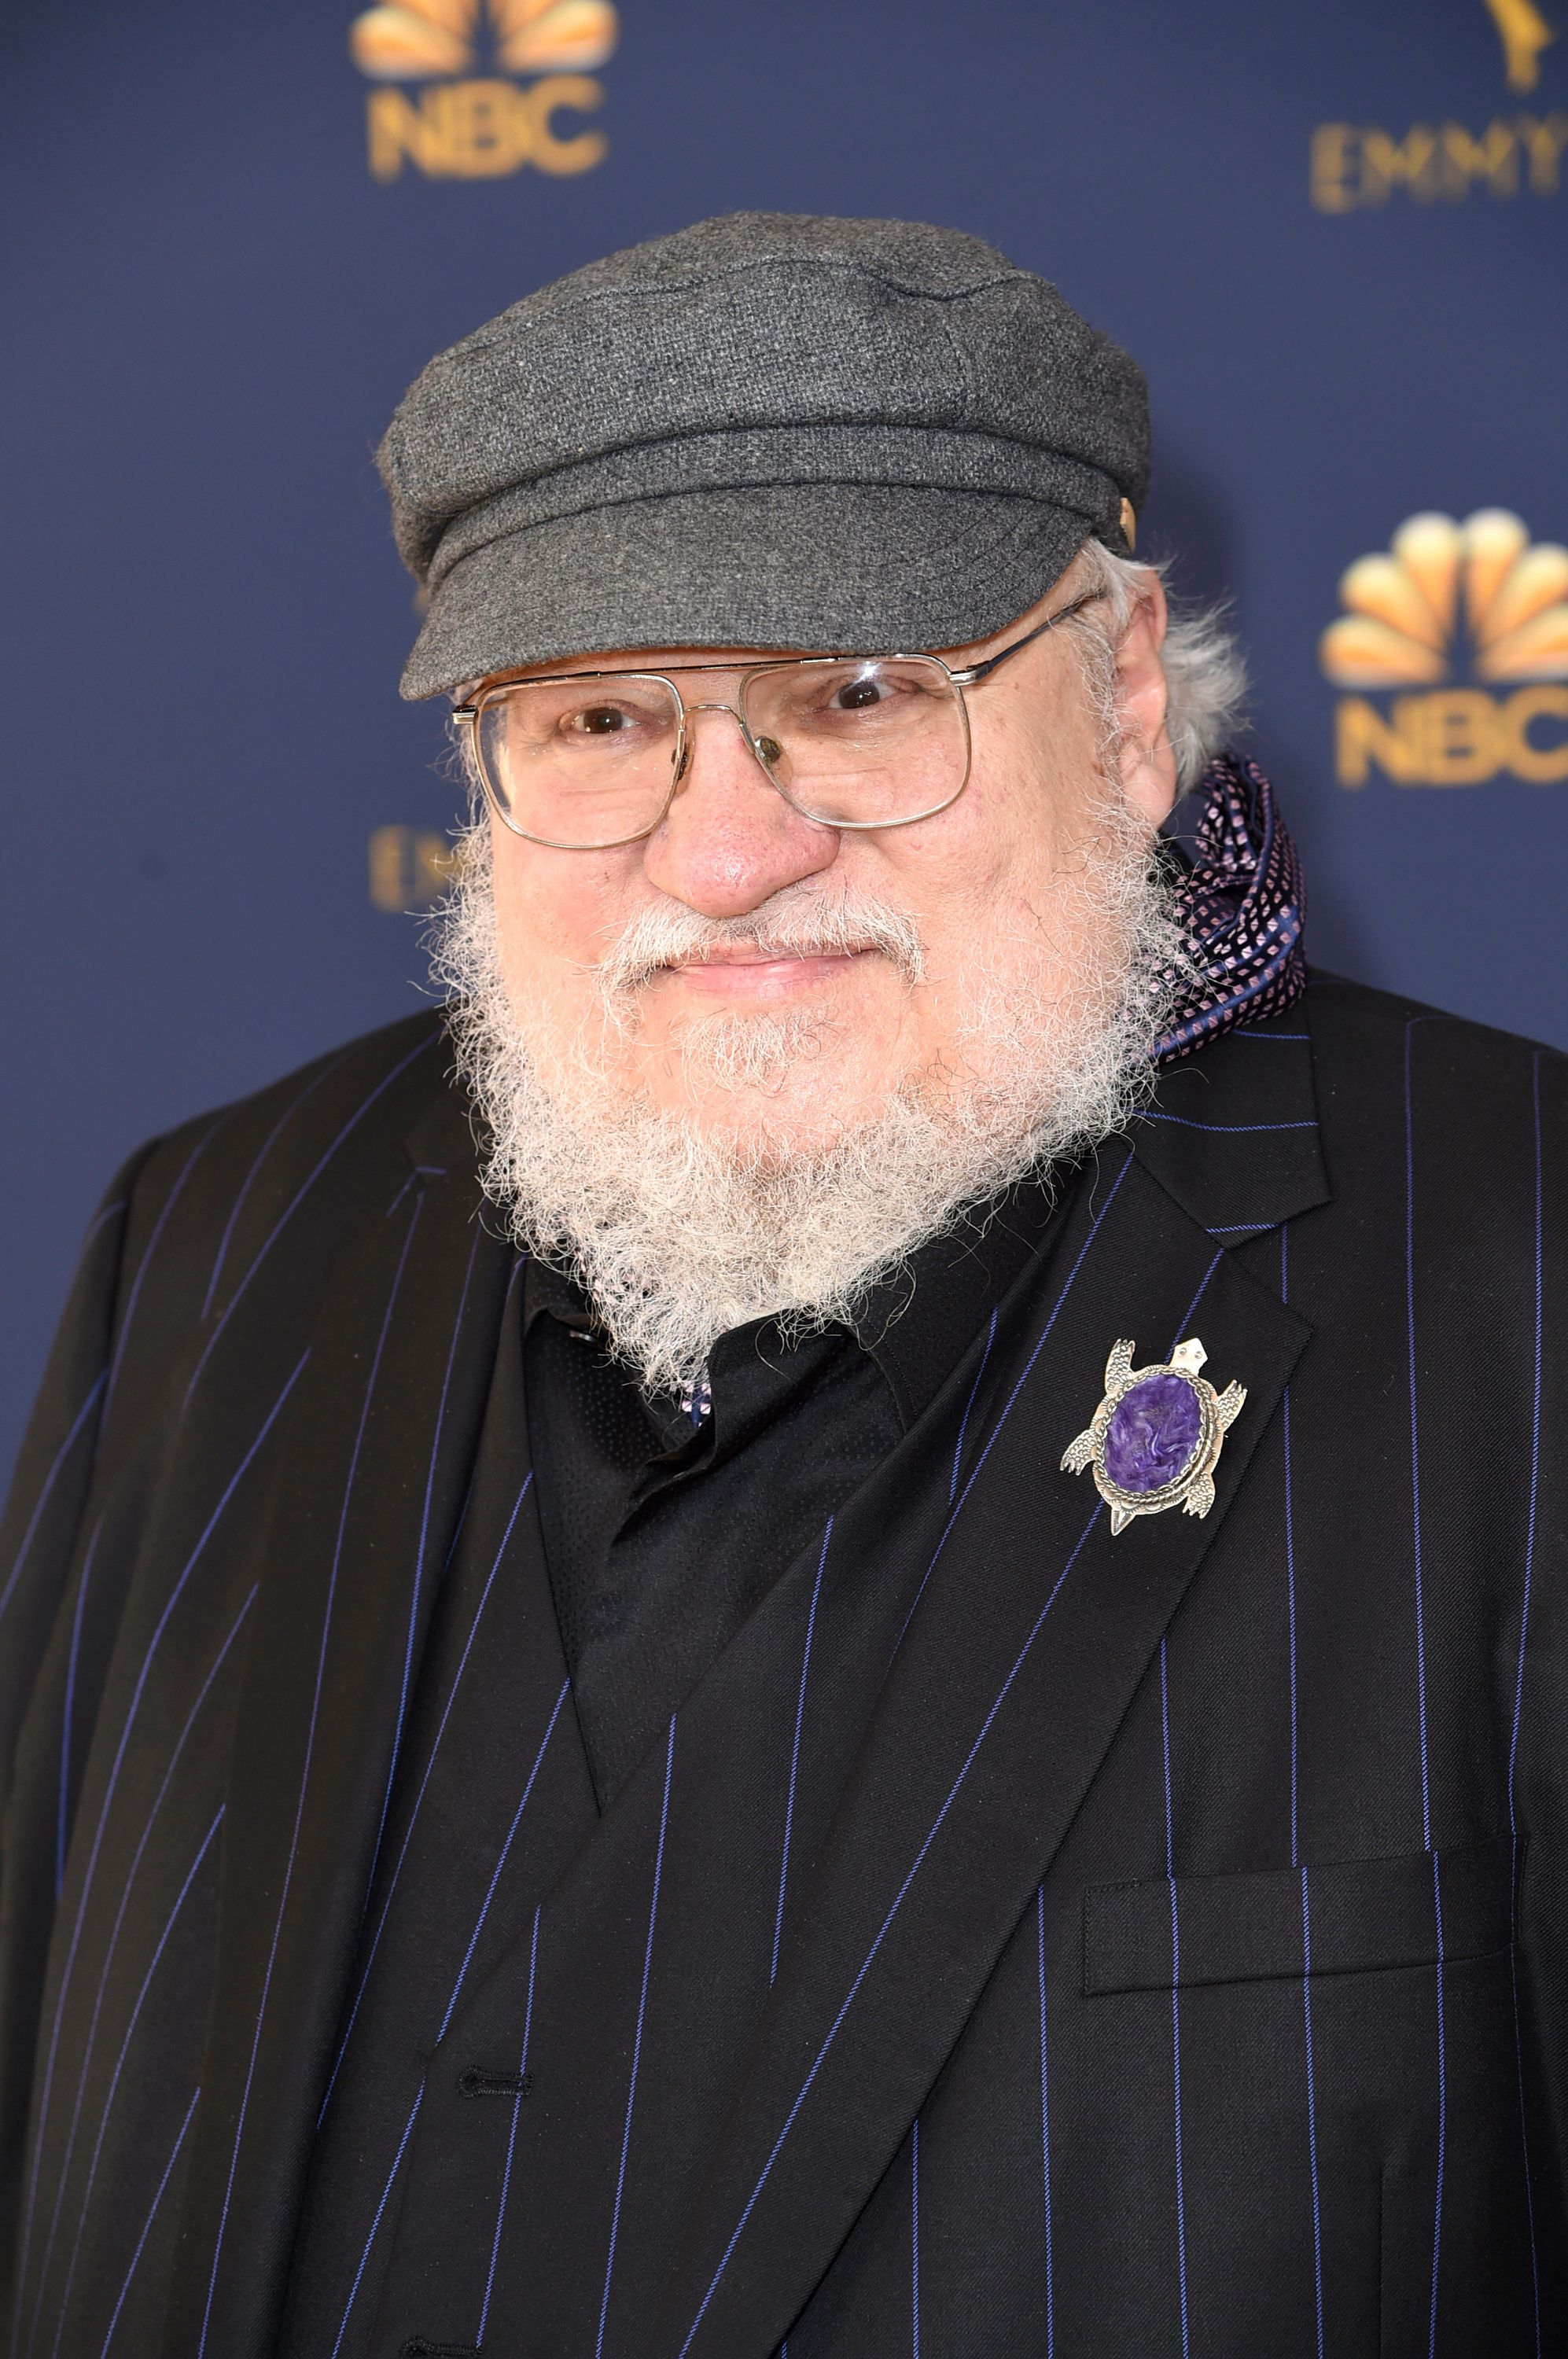 George R. R. Martin at the 2018 Emmys.